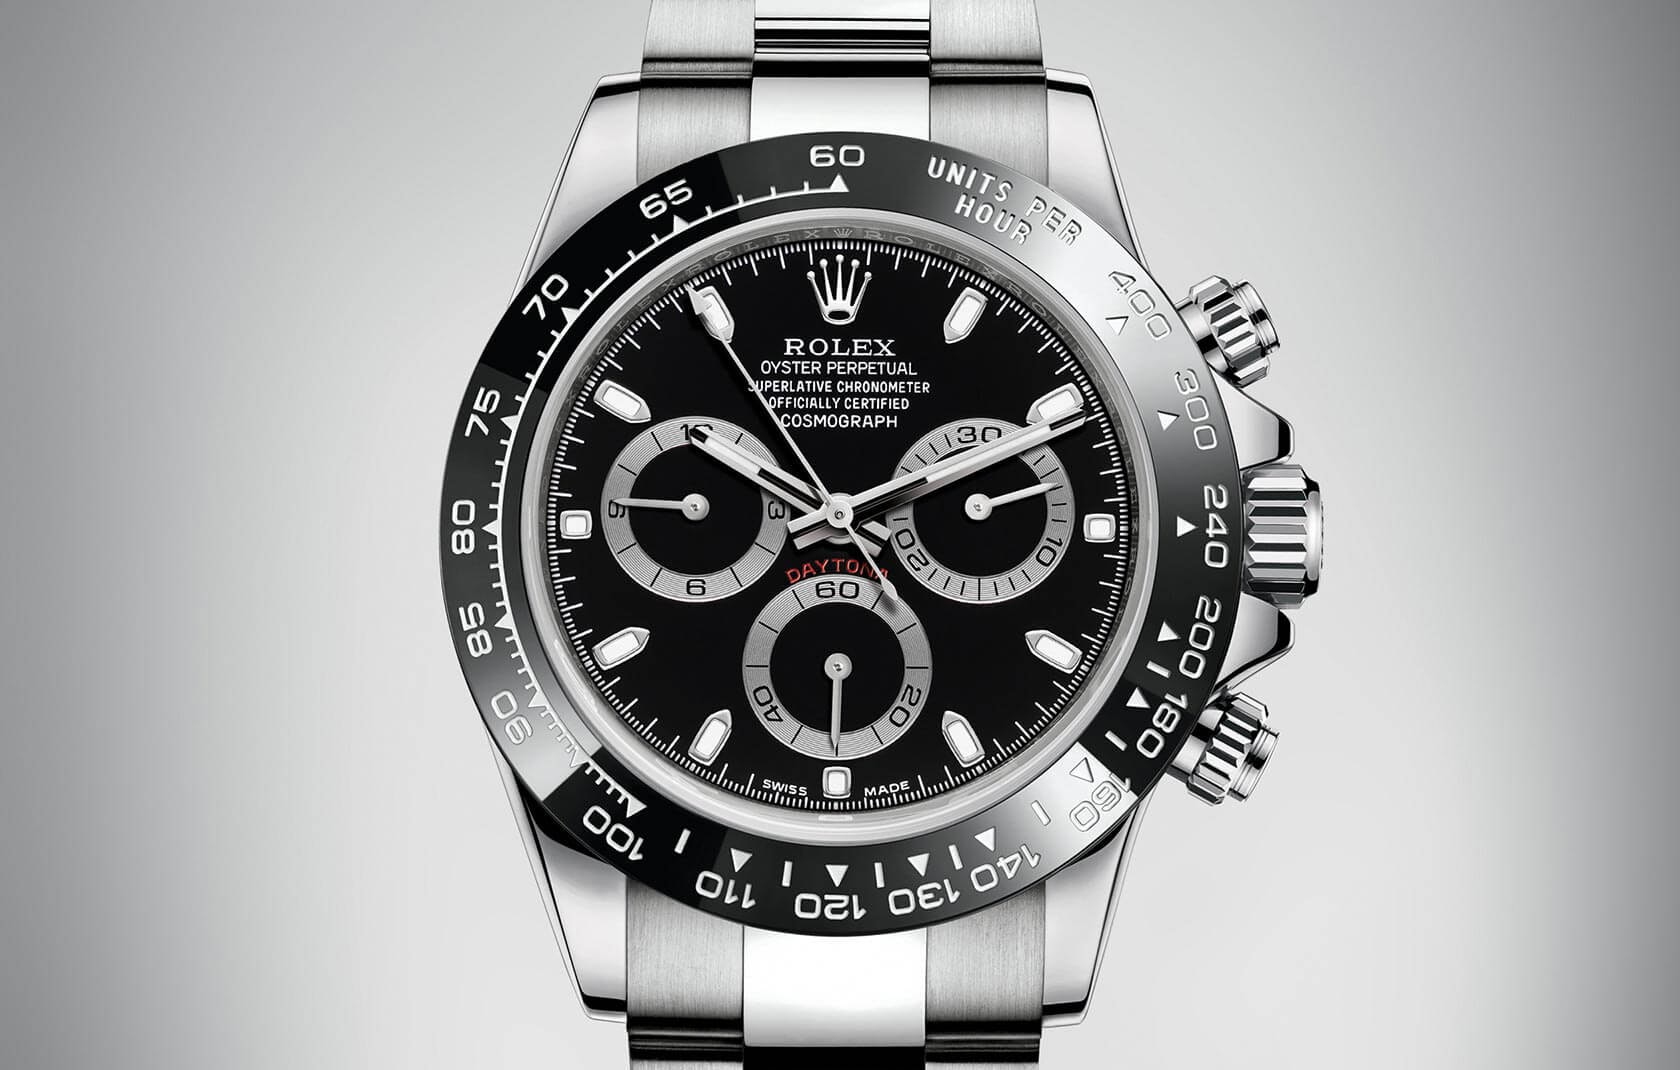 Introducing The New Rolex Daytona, Now With Black Cerachrom